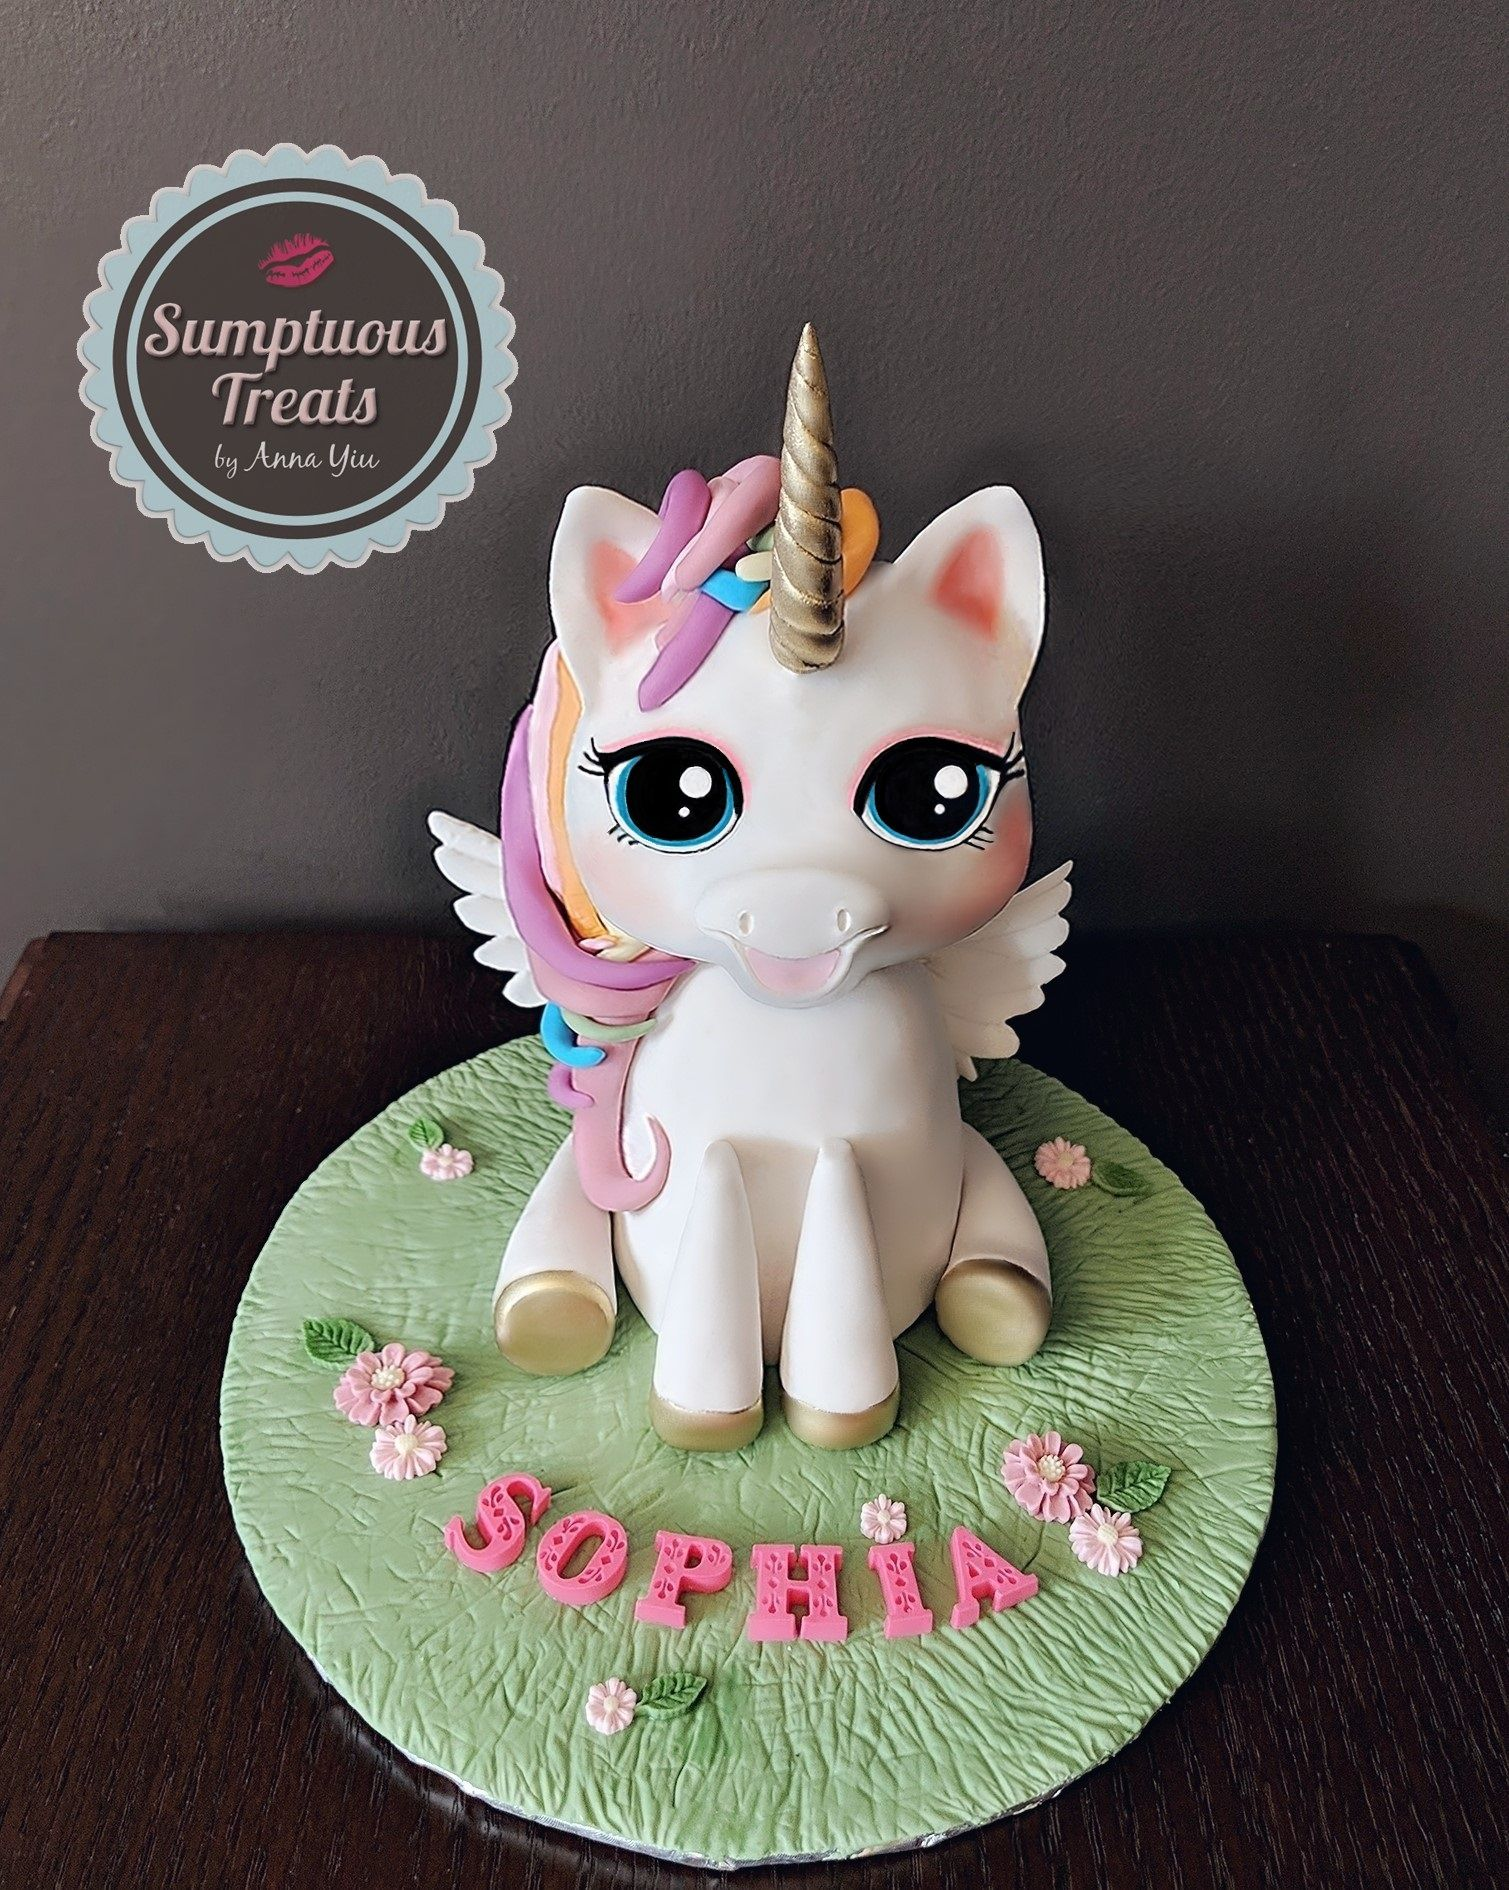 personalised edible cake images near me